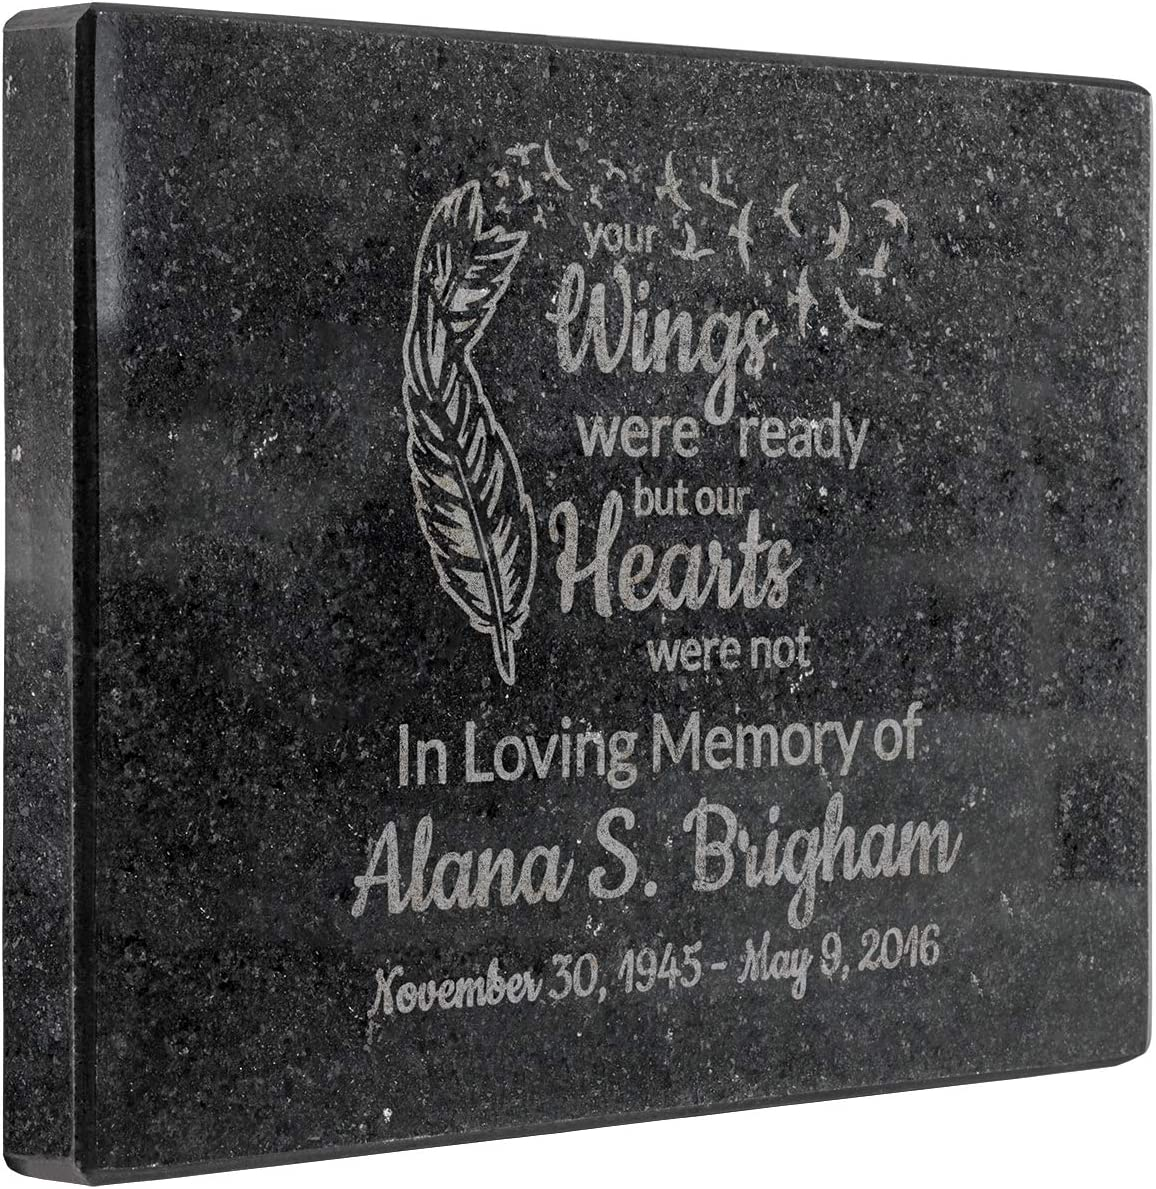 Plaquemaker Your Wings were Ready But Our Hearts were Not Granite Memorial Stone Personalize with Custom Name and Dates Great Sympathy Gift Garden Memorial or Tribute to a Lost Loved One